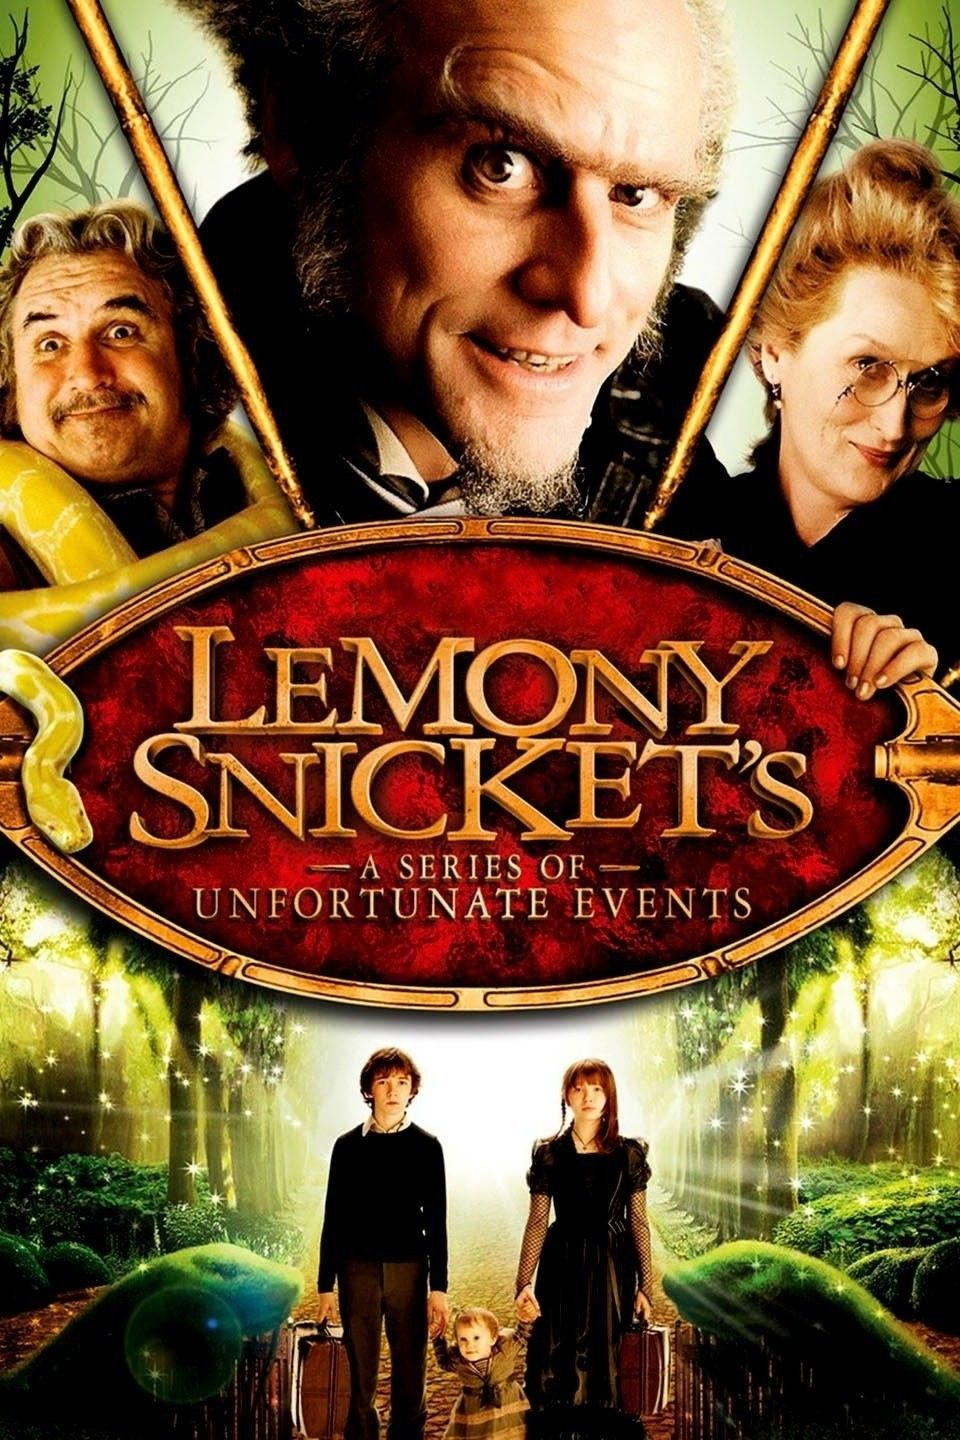 Lemony Snicket S A Series Of Unfortunate Events Con Imagenes